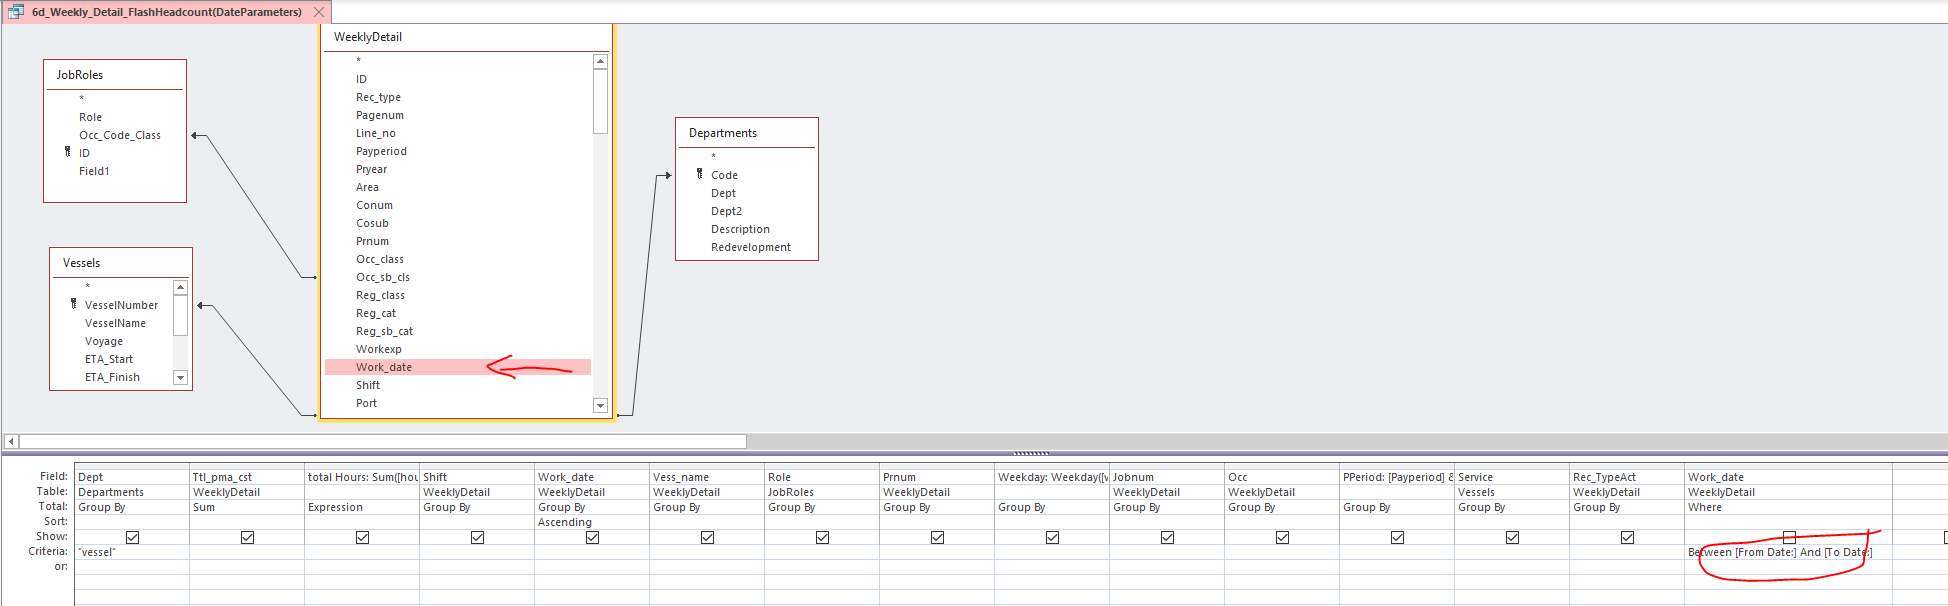 Access Parameter Query Design View.PNG